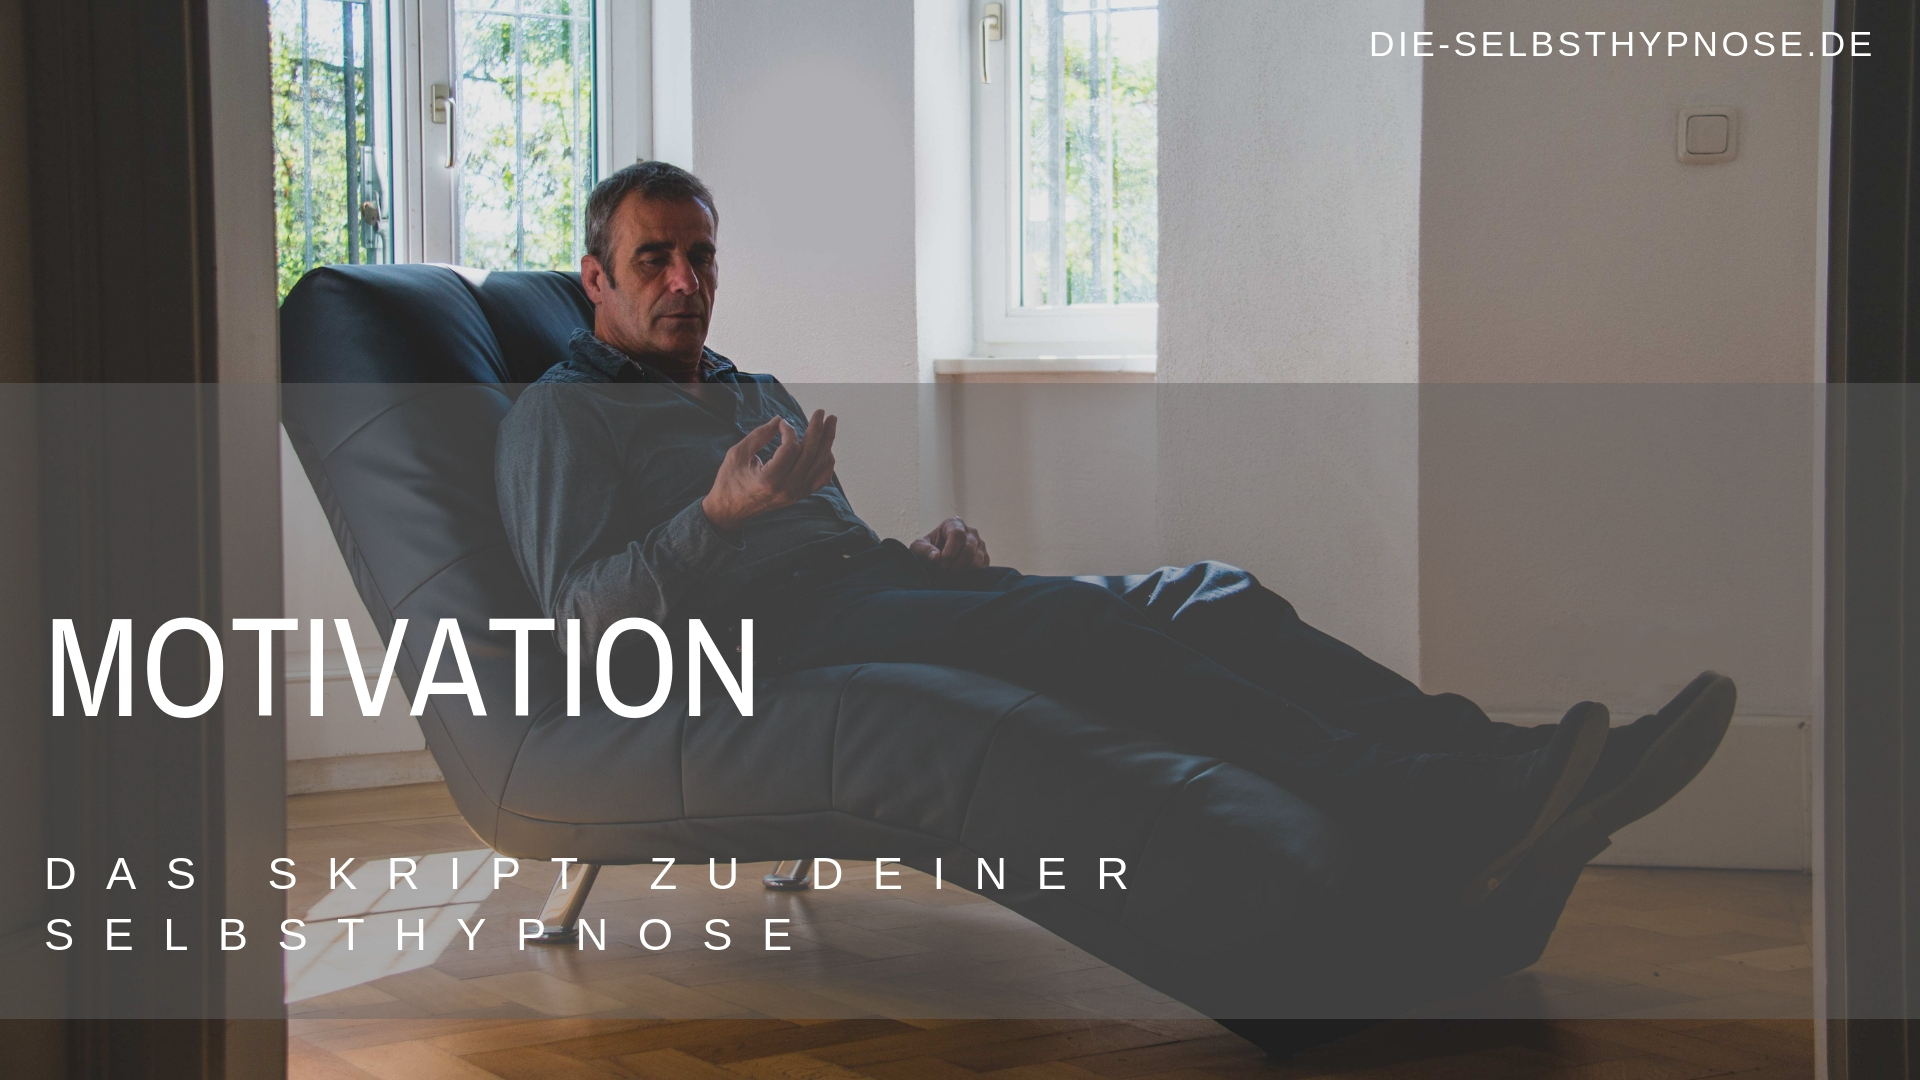 Selbsthypnose-Skript zur Motivation